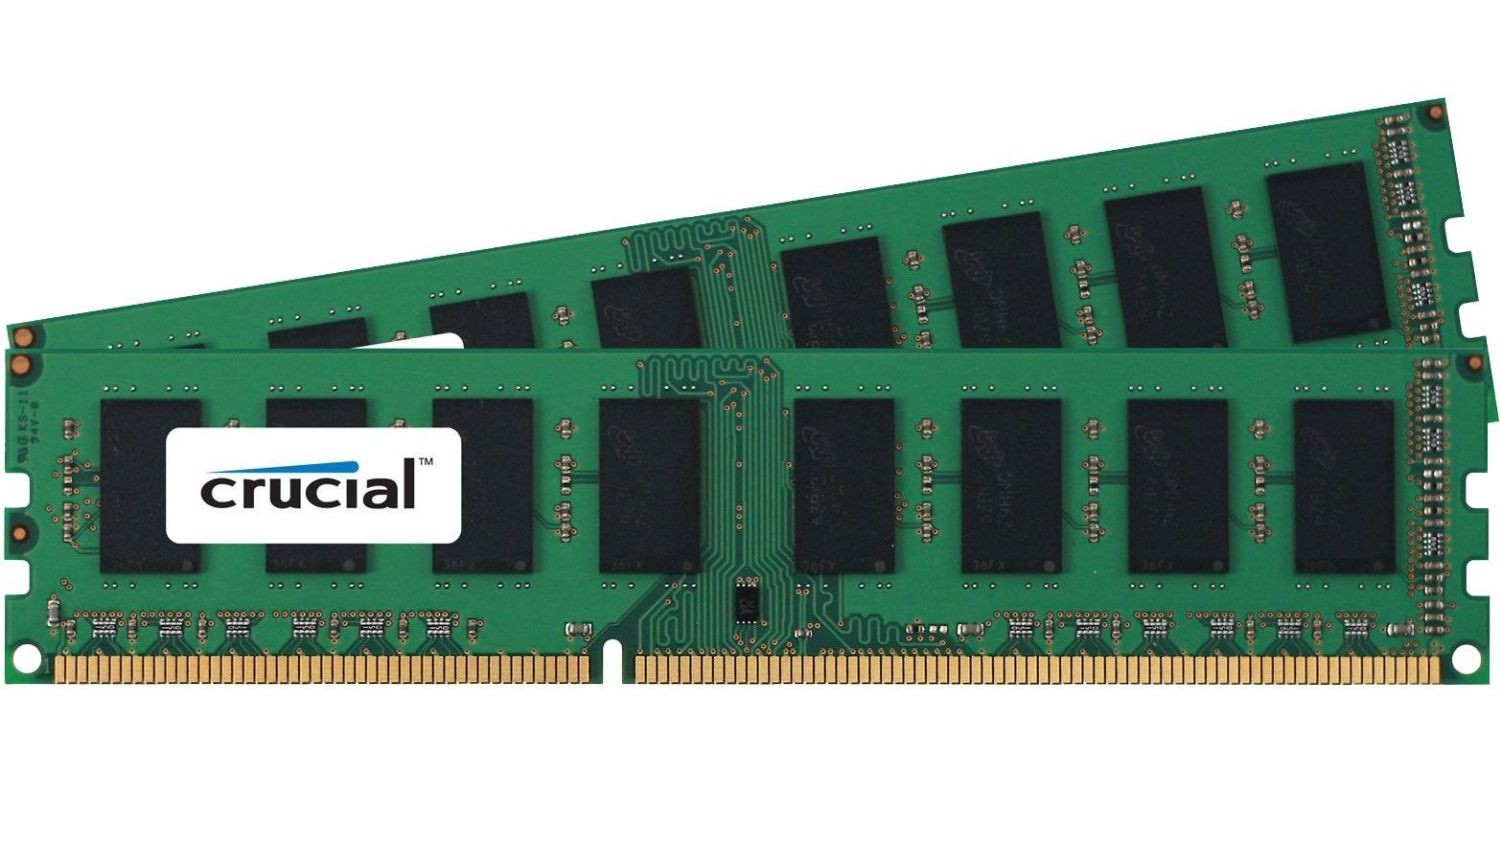 Crucial 2x8GB 2133MHz DDR4 CL15 Dual Ranked UDIMM 1.2V